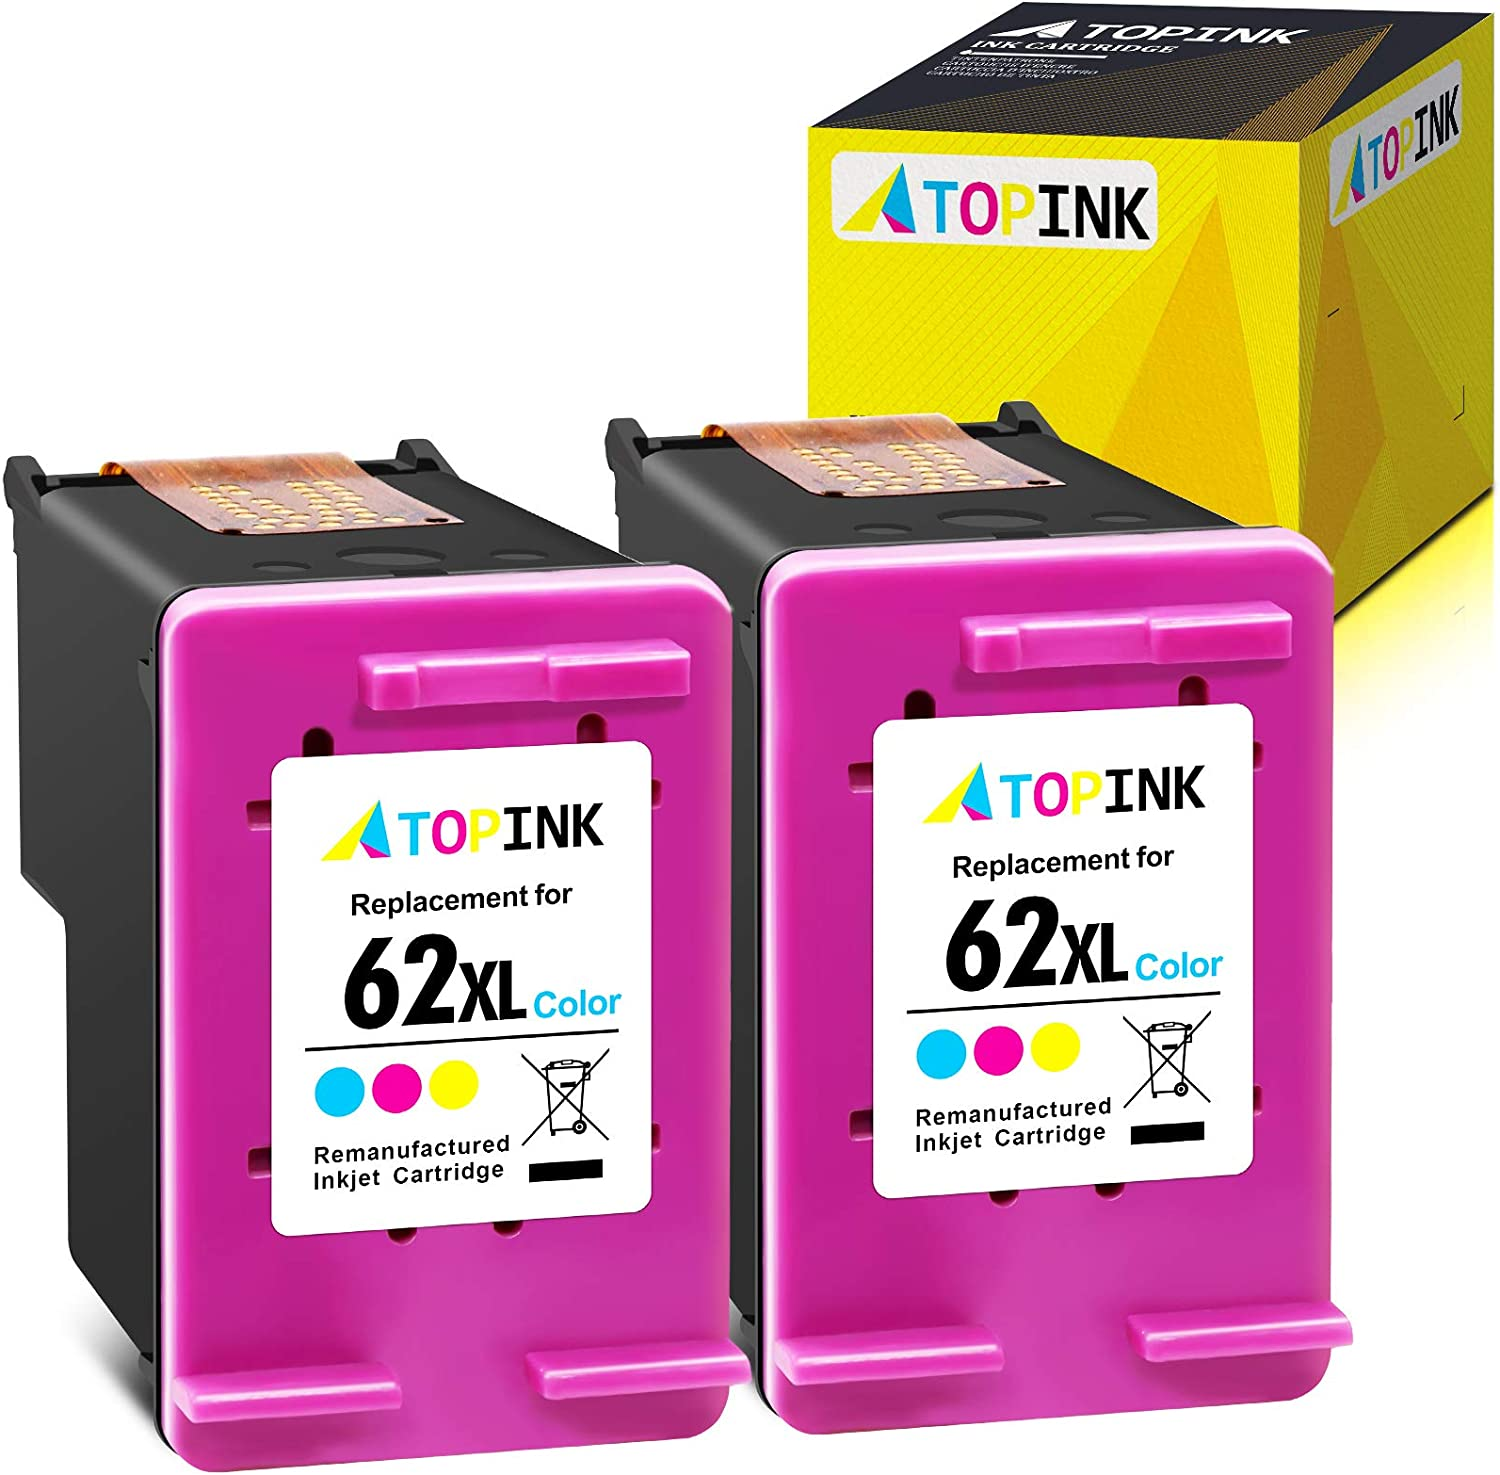 ATOPINK Remanufactured Ink Cartridge Replacement for HP 62XL 62 XL Work with Envy 7640 5660 5540 5661 5642 5640 5640 5663 5544 5542 5549 5643 OfficeJet 5740 250 5745 5746 200(Tri-Color 2 Pack